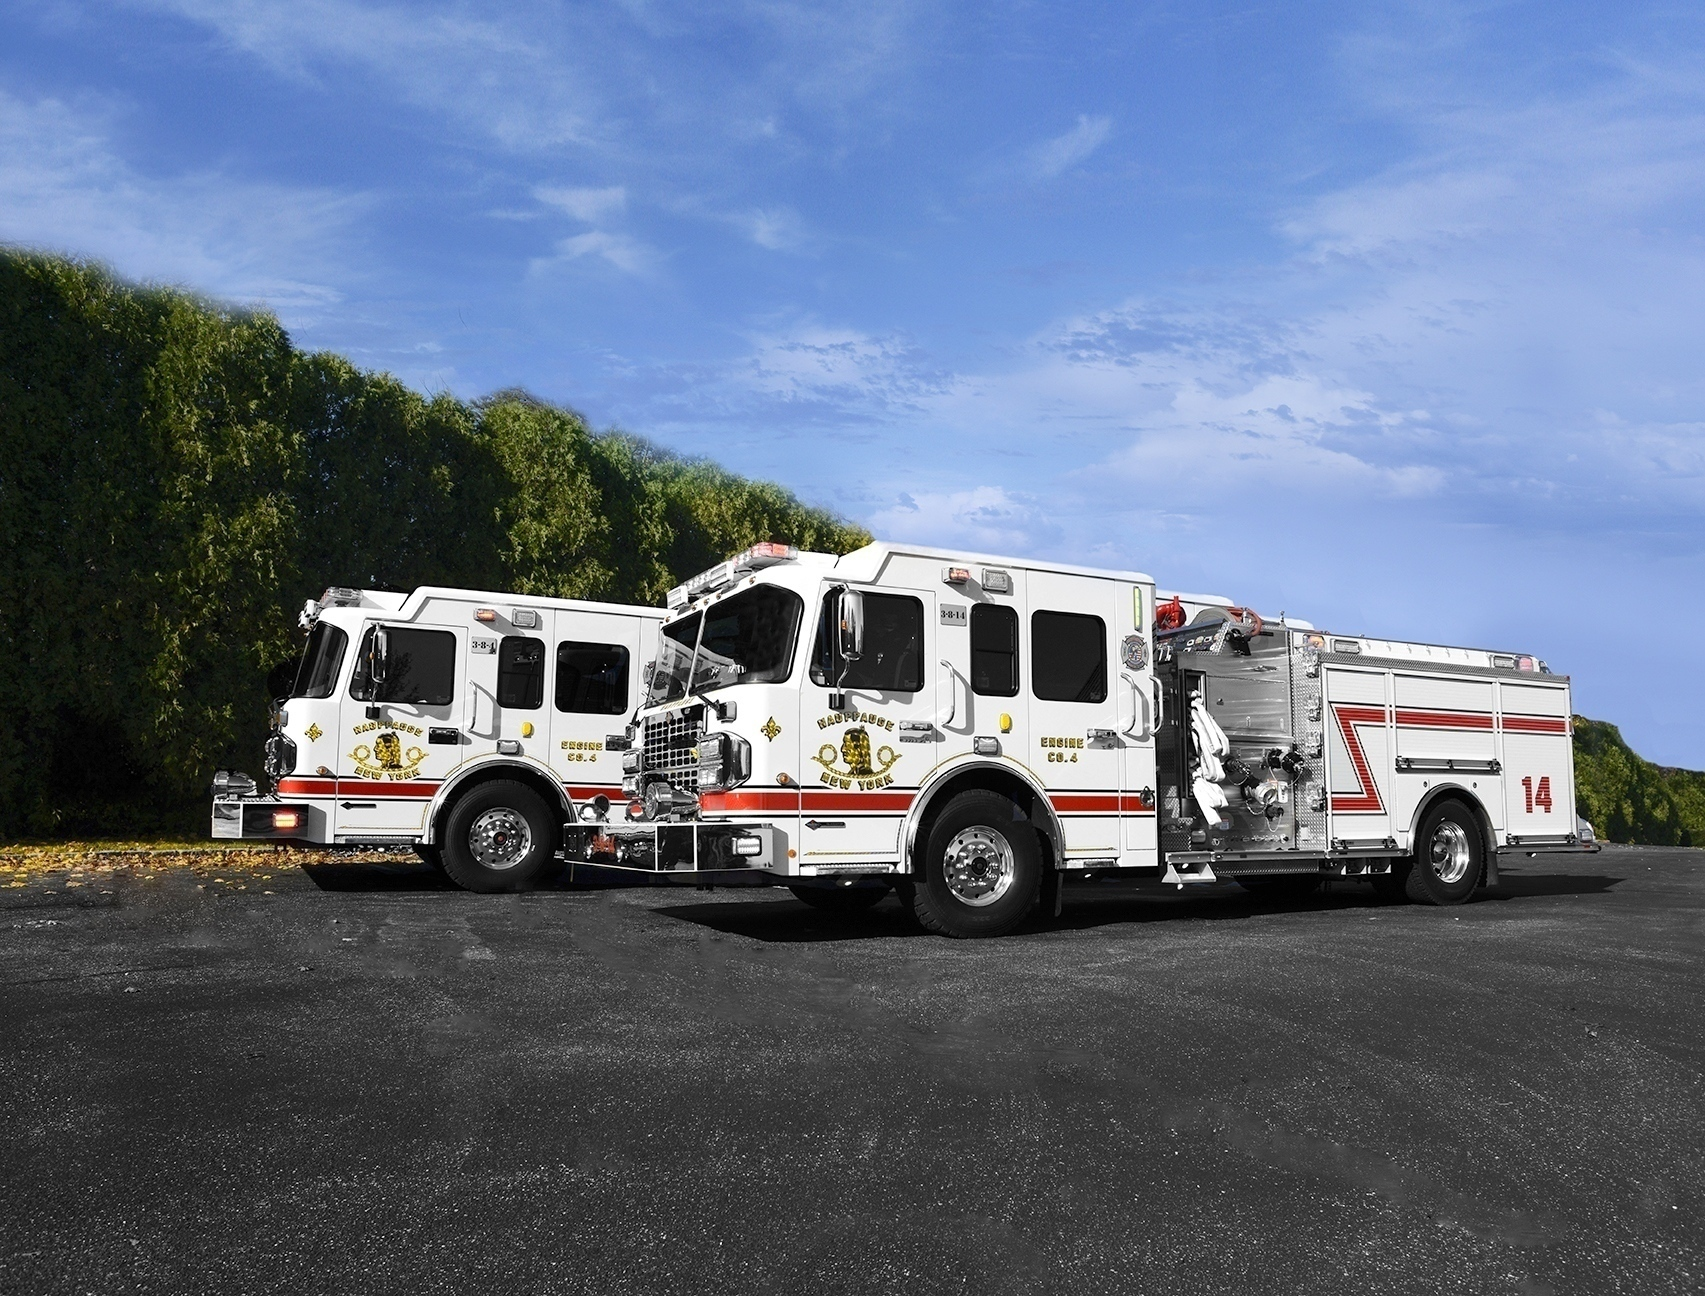 Demo Ambulance For Sale >> Hauppauge FD - Hendrickson Fire